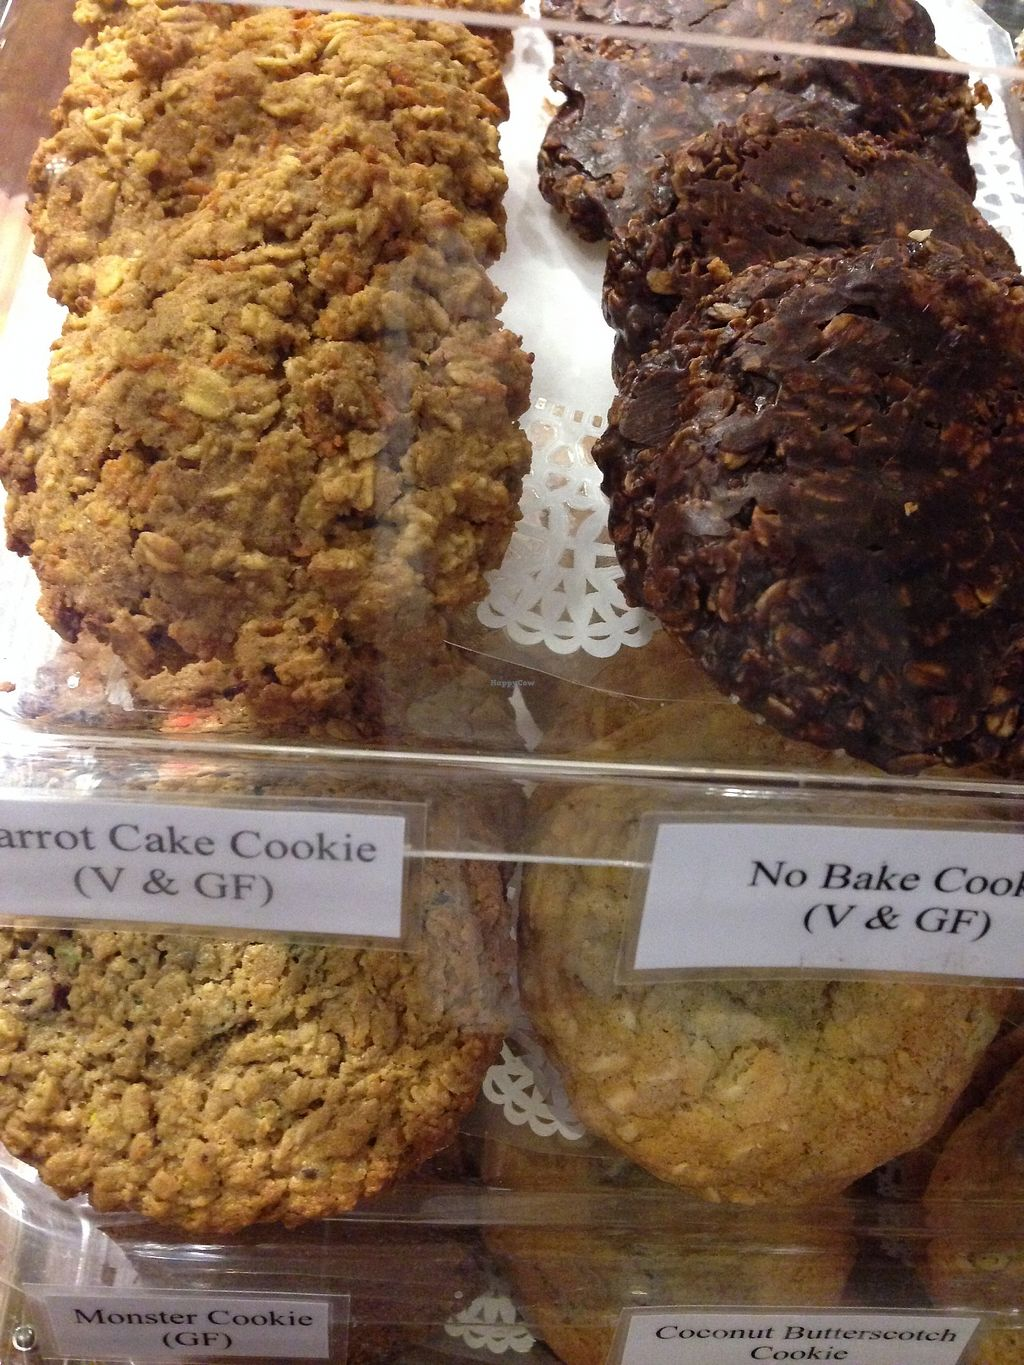 "Photo of New Moon VT  by <a href=""/members/profile/BarbaraMorningstar"">BarbaraMorningstar</a> <br/>Vegan carrot cake cookies and no bake cookiess <br/> February 15, 2018  - <a href='/contact/abuse/image/32840/359534'>Report</a>"